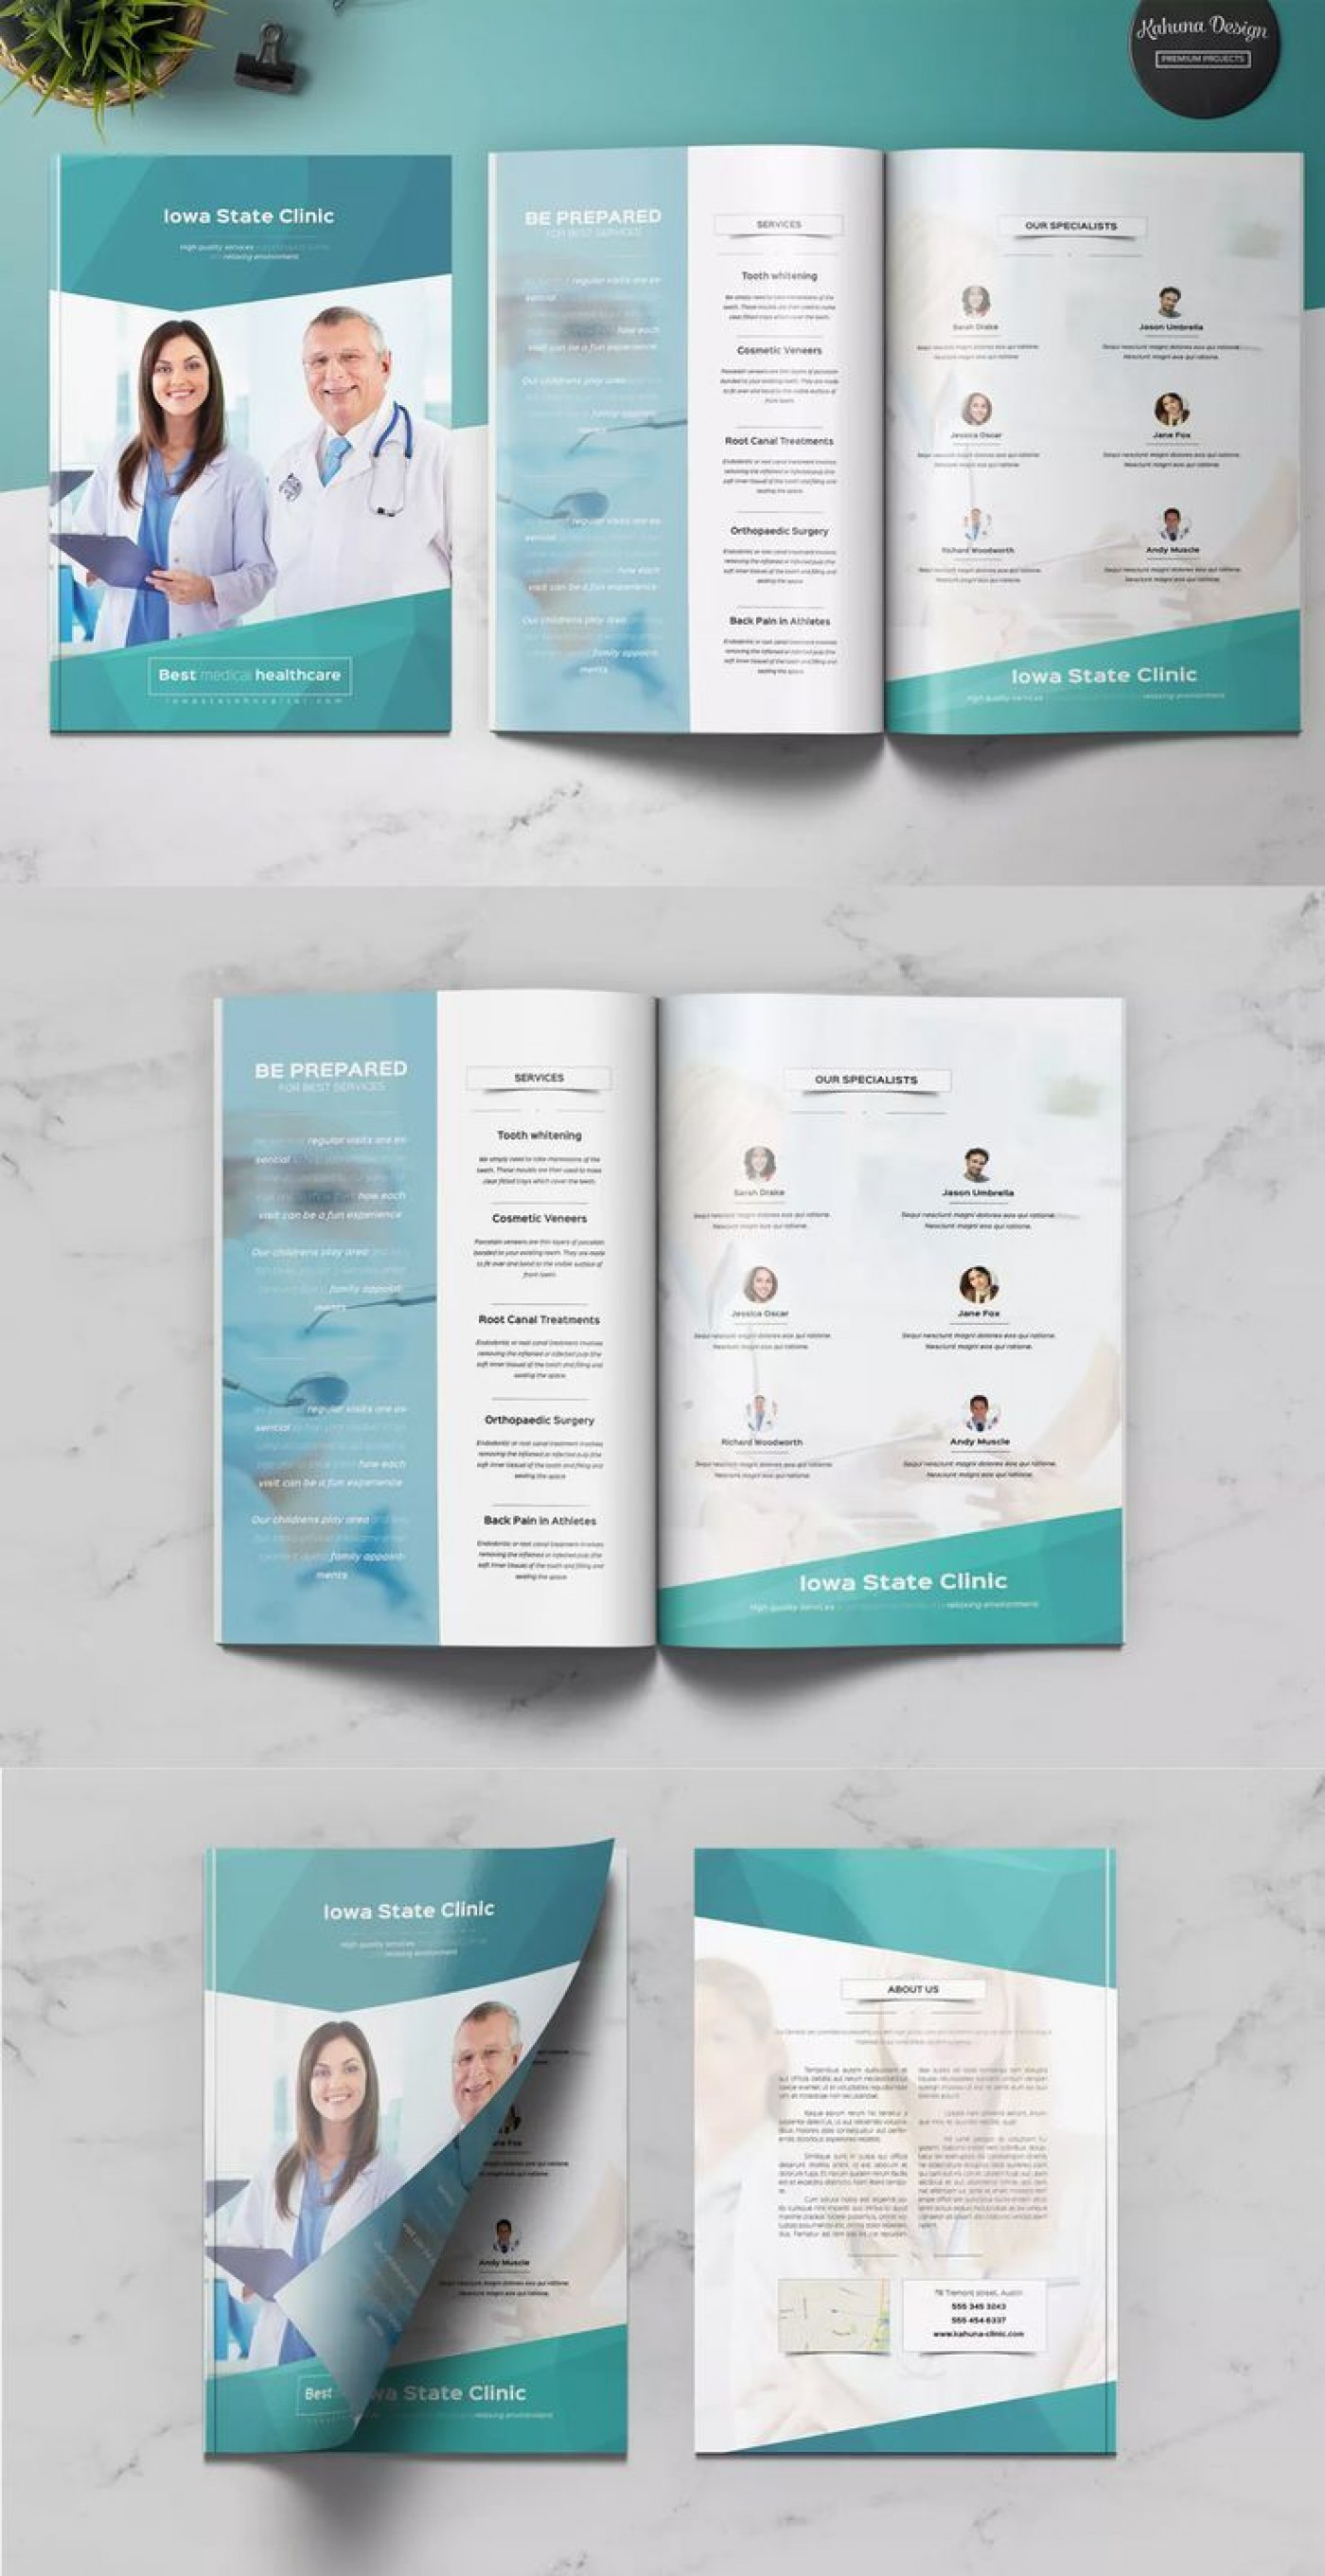 005 Fascinating Download Brochure Template For Word 2007 Highest Clarity 1400